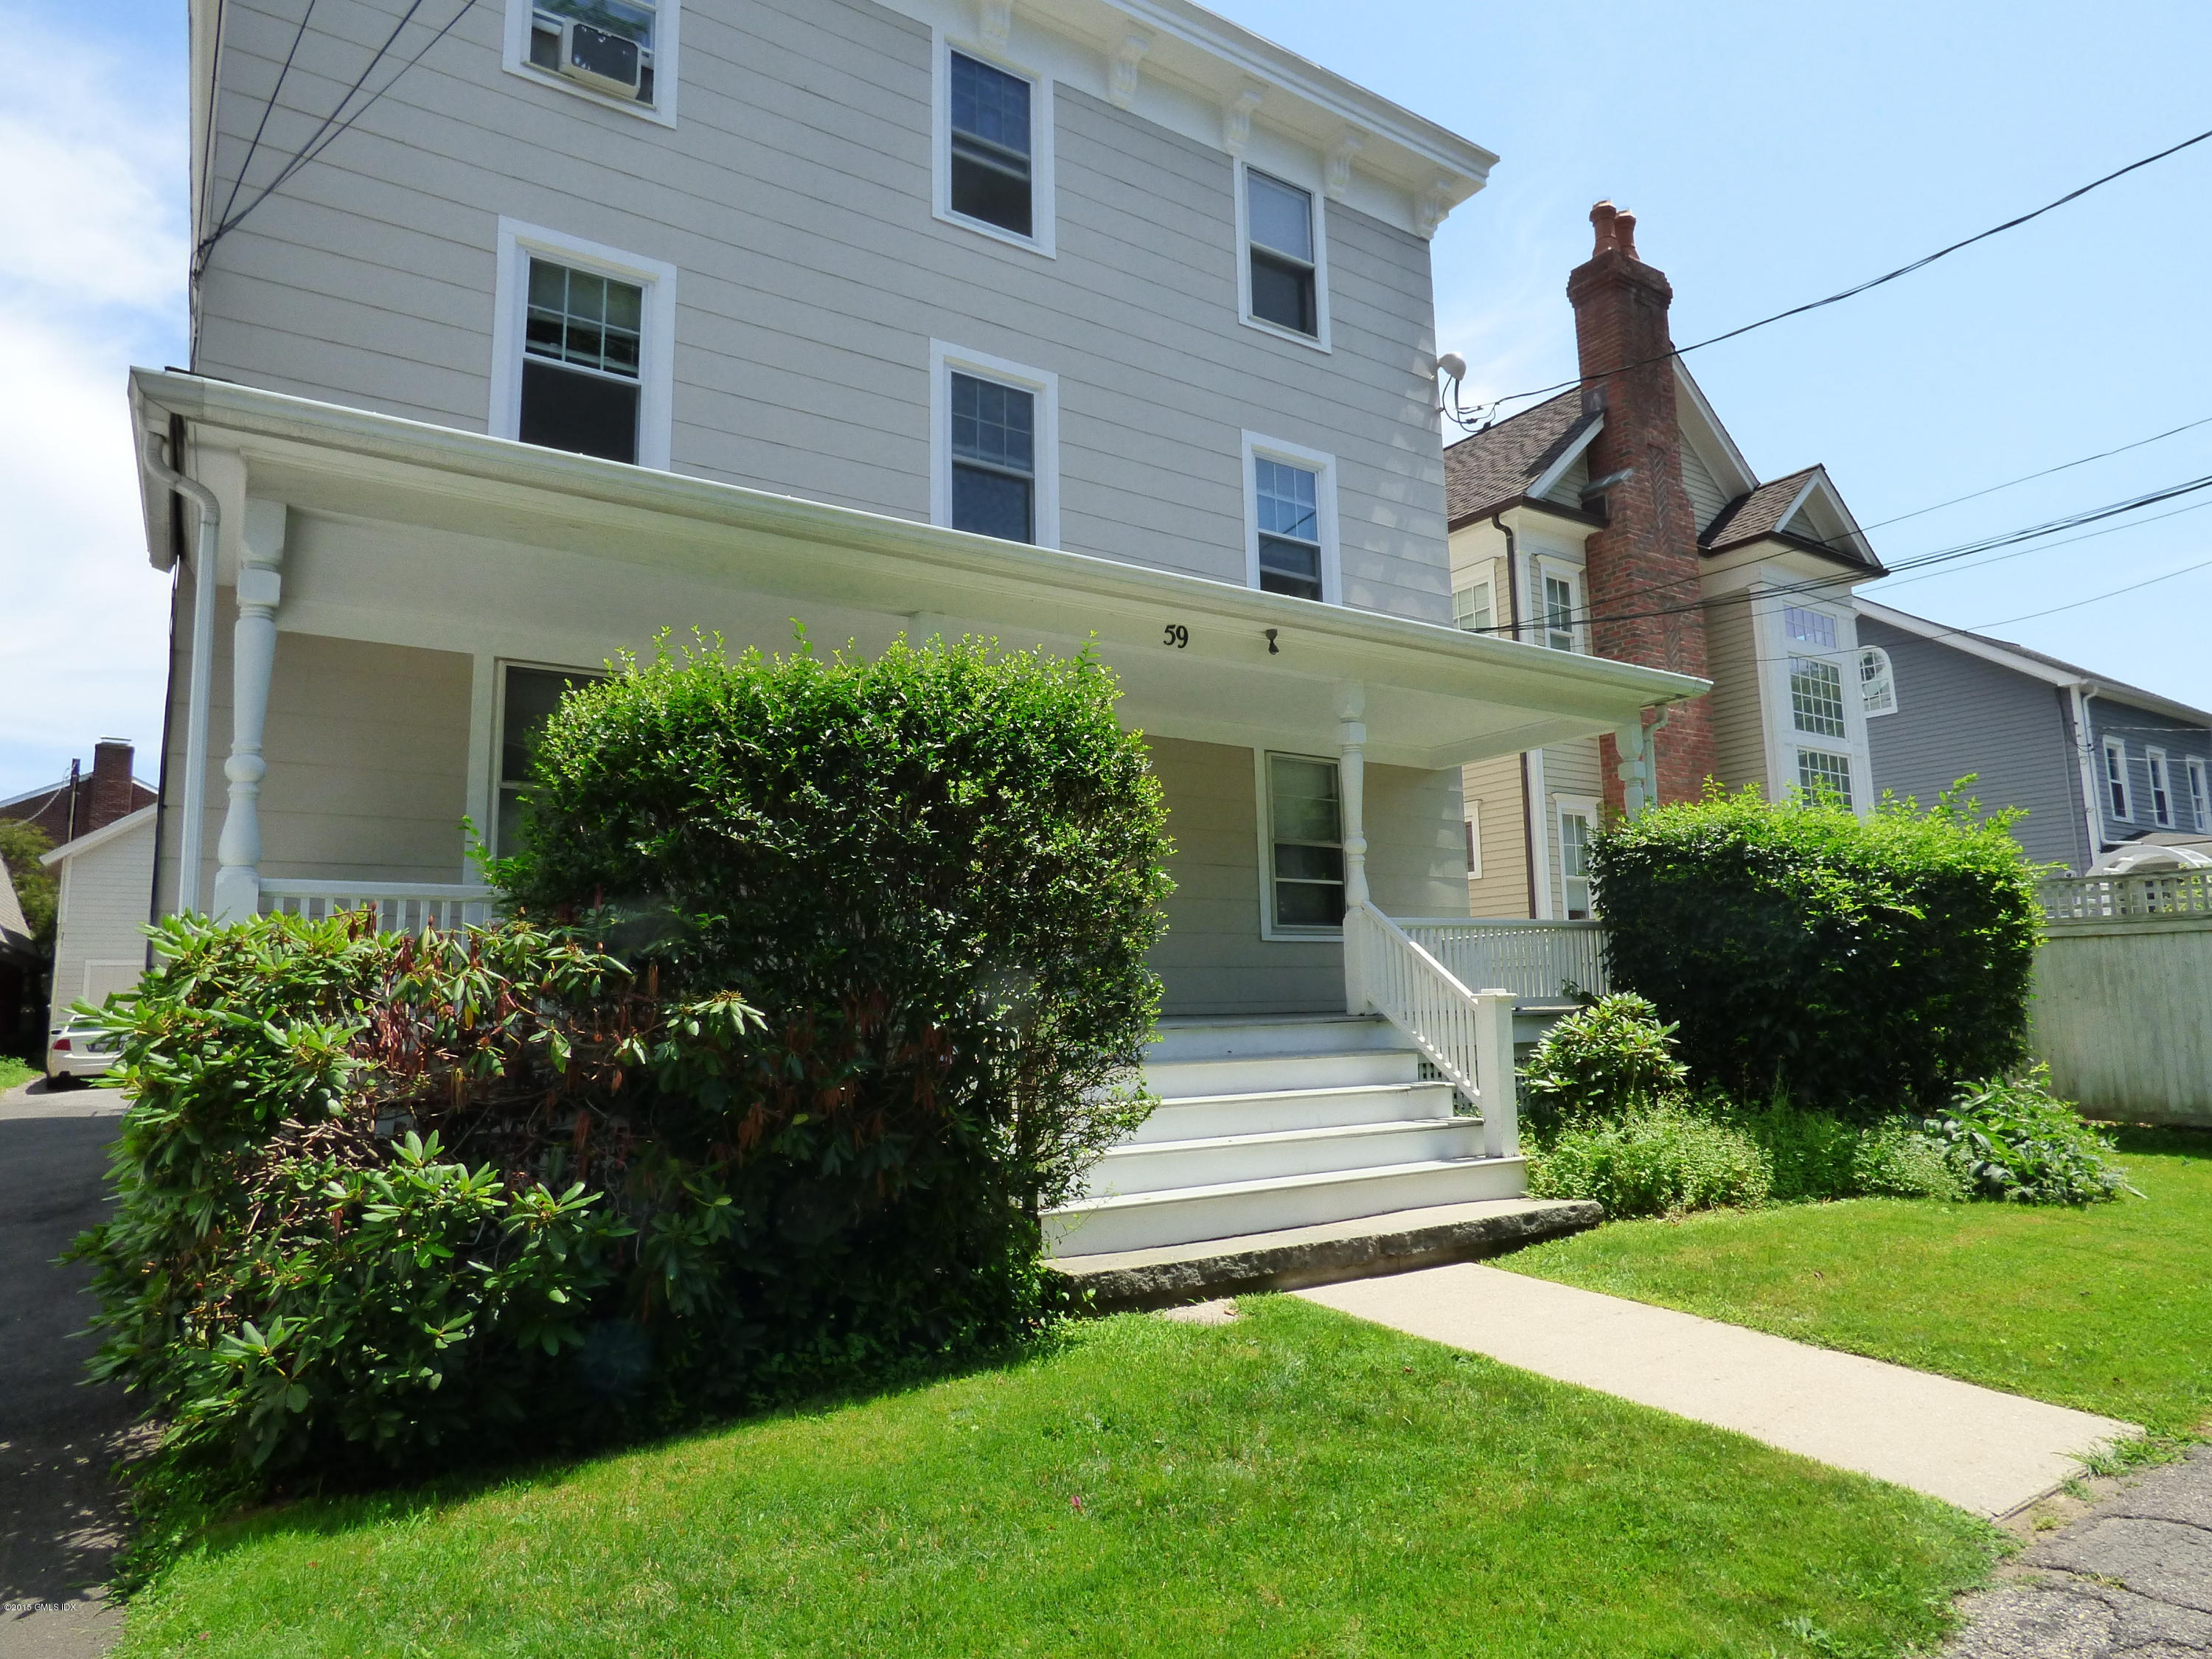 59 Church Street,Greenwich,Connecticut 06830,1 Bedroom Bedrooms,1 BathroomBathrooms,Apartment,Church,108618